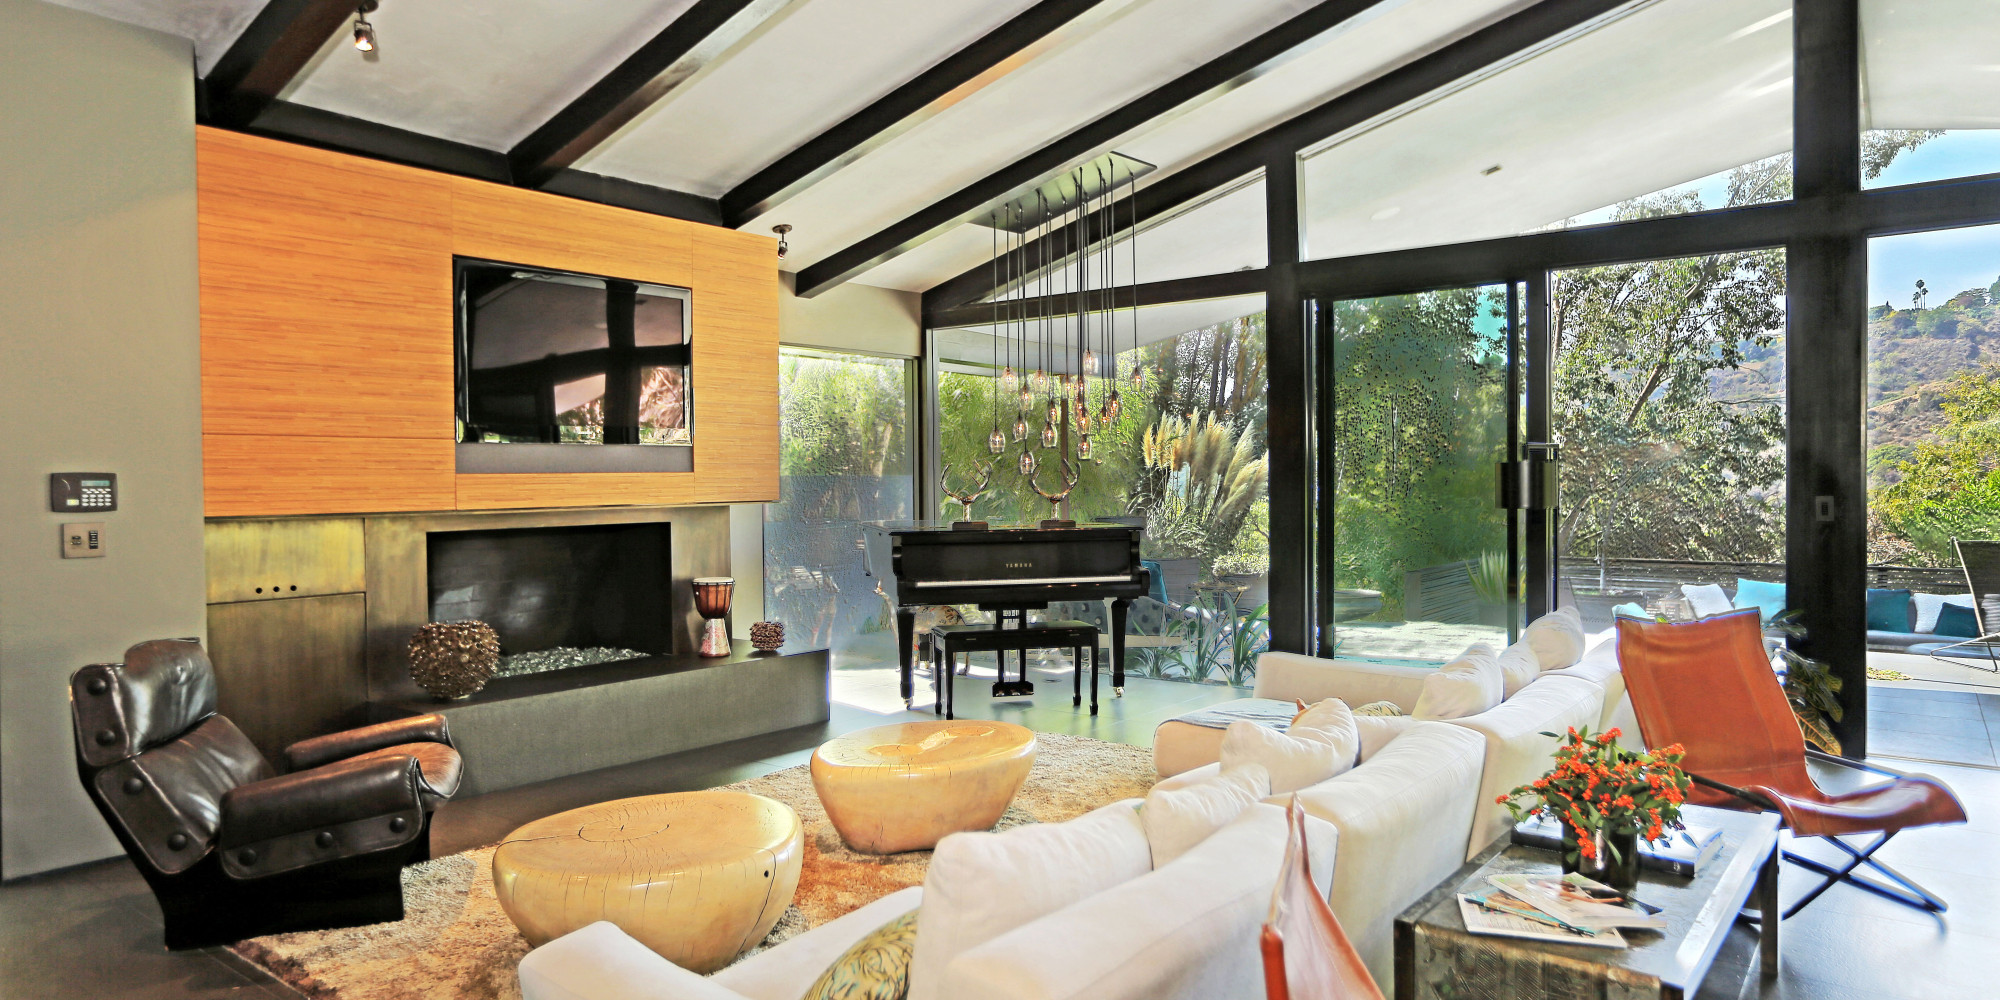 Celebrity Homes Pictures Videos Breaking News - Real home design